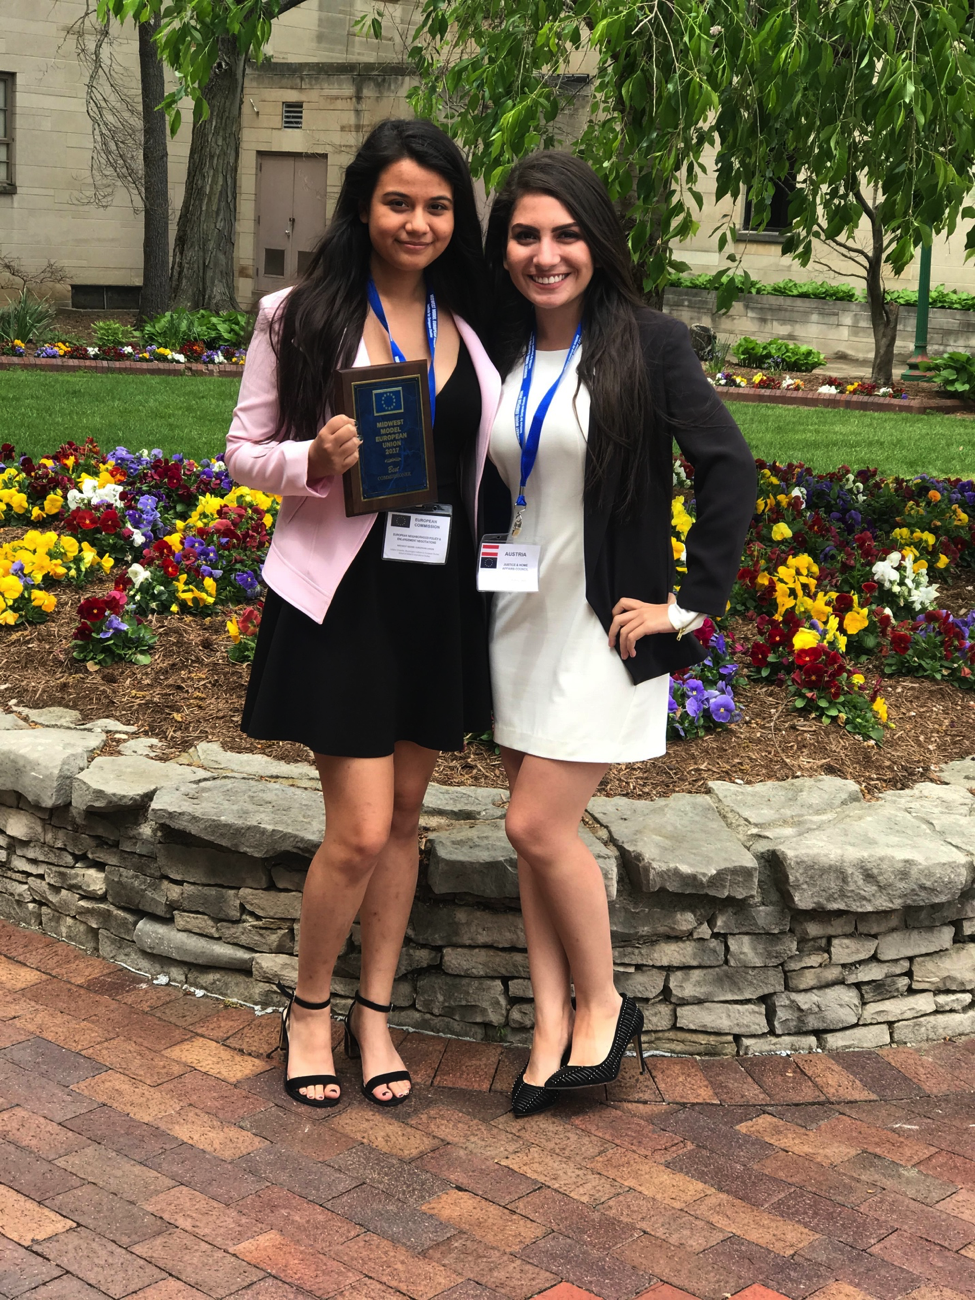 Ashley Amian and Lucia Barnes participated in the diplomatic simulation, the students represented Austria.